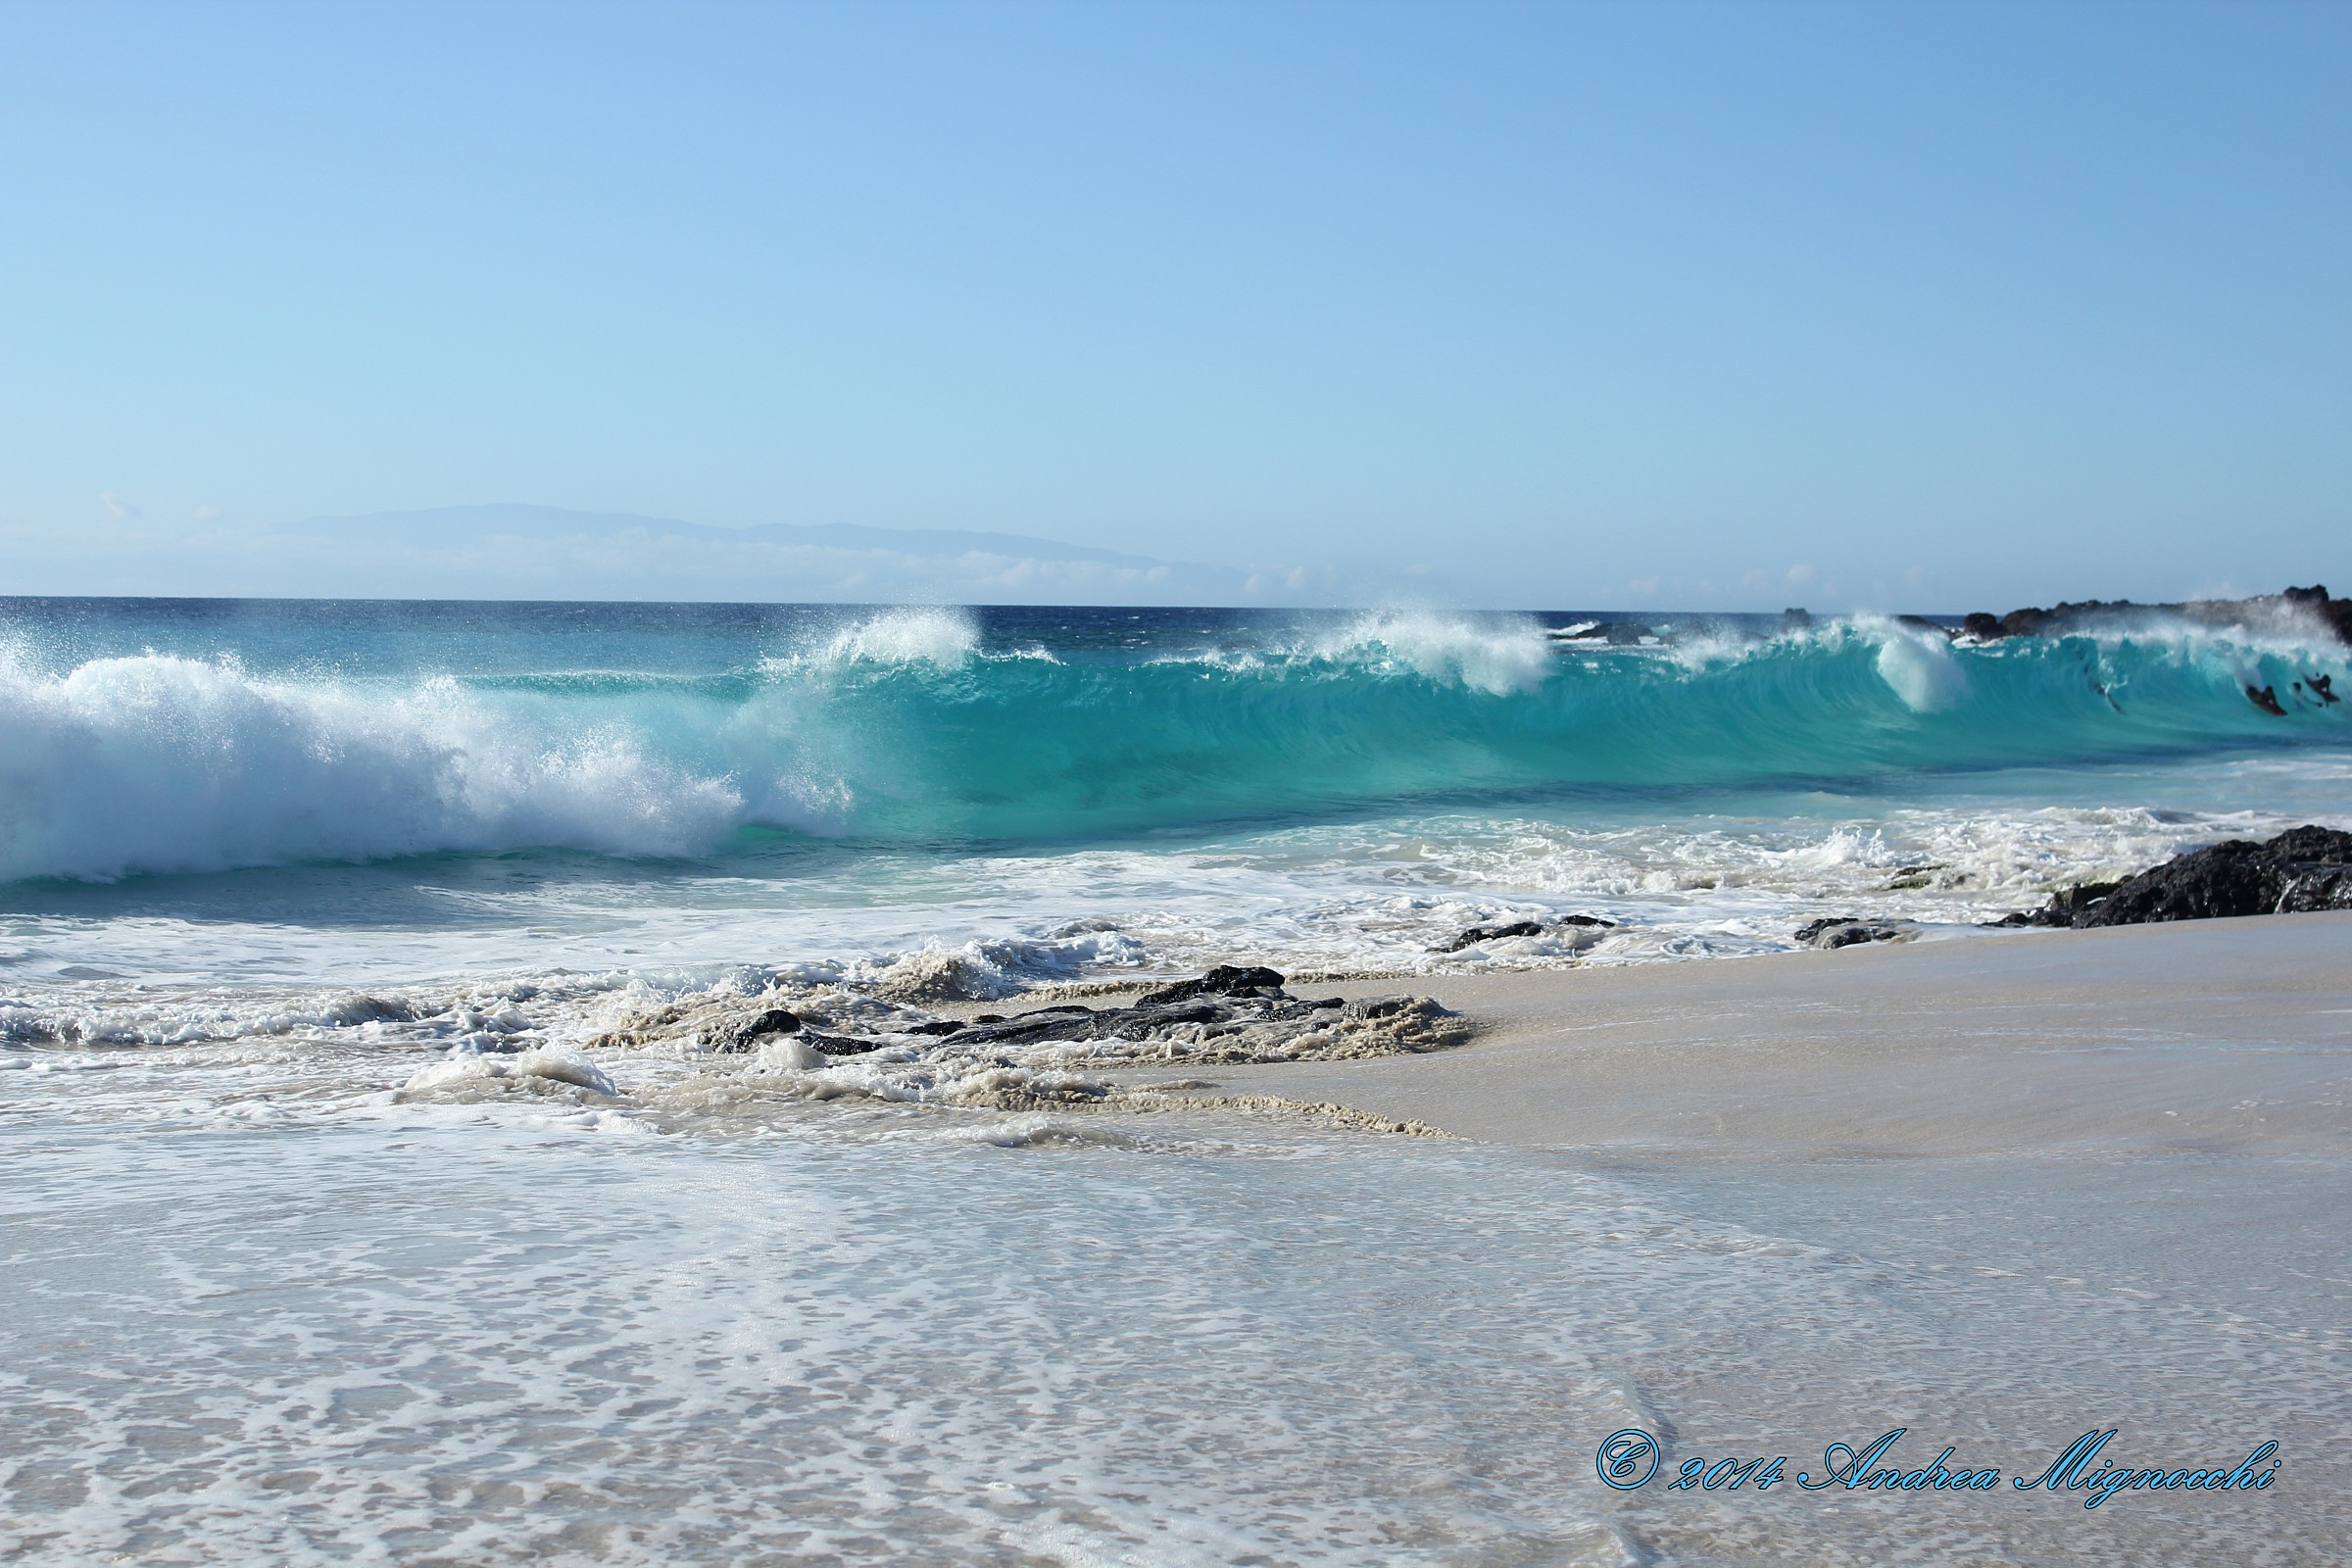 Sea and waves...